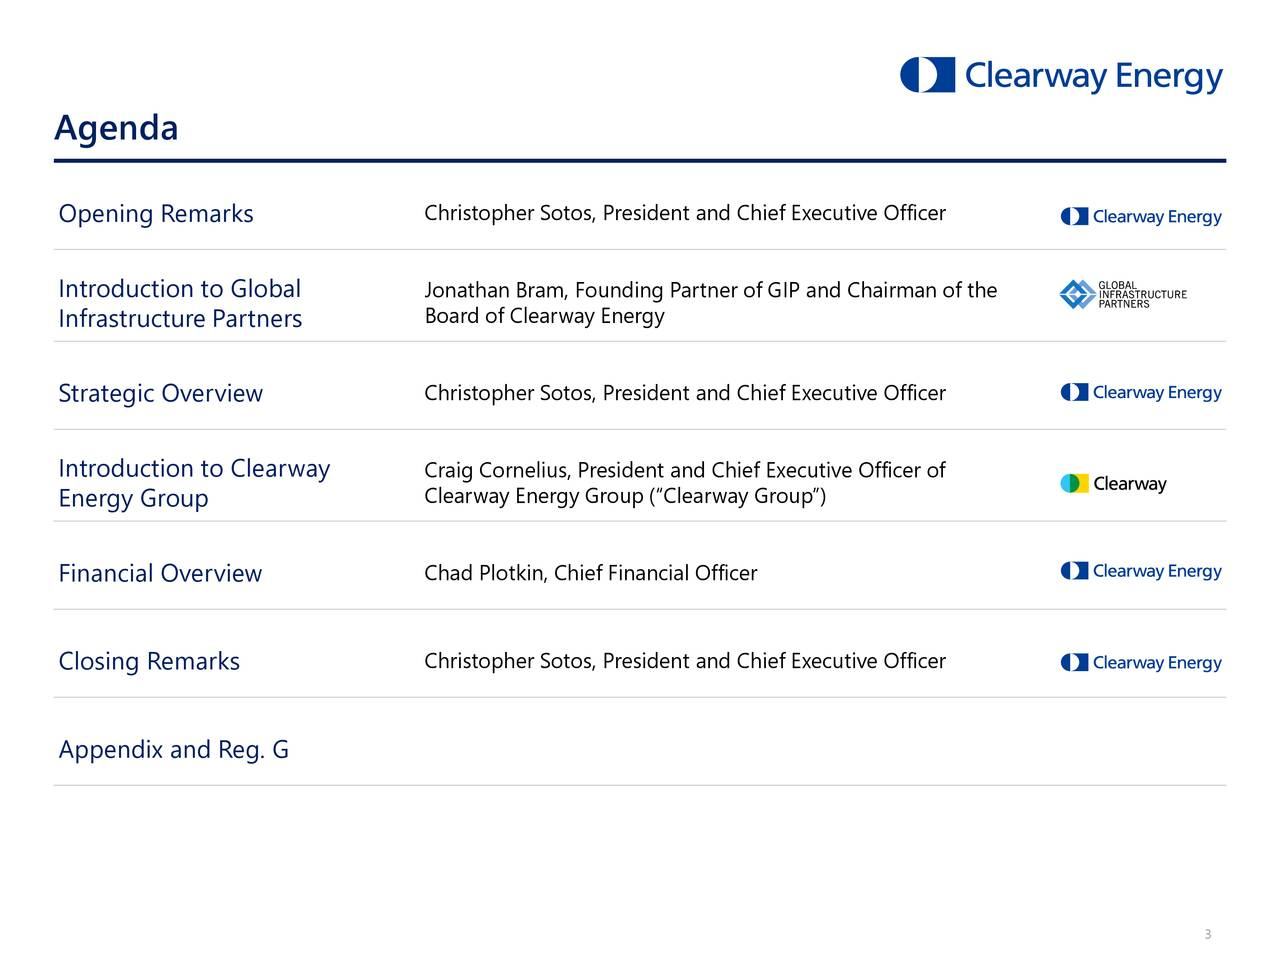 """Opening Remarks Christopher Sotos, President and Chief Executive Officer Introduction to Global Jonathan Bram, Founding Partner of GIP and Chairman of the Infrastructure Partners Board of Clearway Energy Strategic Overview Christopher Sotos, President and Chief Executive Officer Introduction to Clearway Craig Cornelius, President and Chief Executive Officer of Clearway Energy Group (""""Clearway Group"""") Energy Group Financial Overview Chad Plotkin, Chief Financial Officer Closing Remarks Christopher Sotos, President and Chief Executive Officer Appendix and Reg. G 3"""